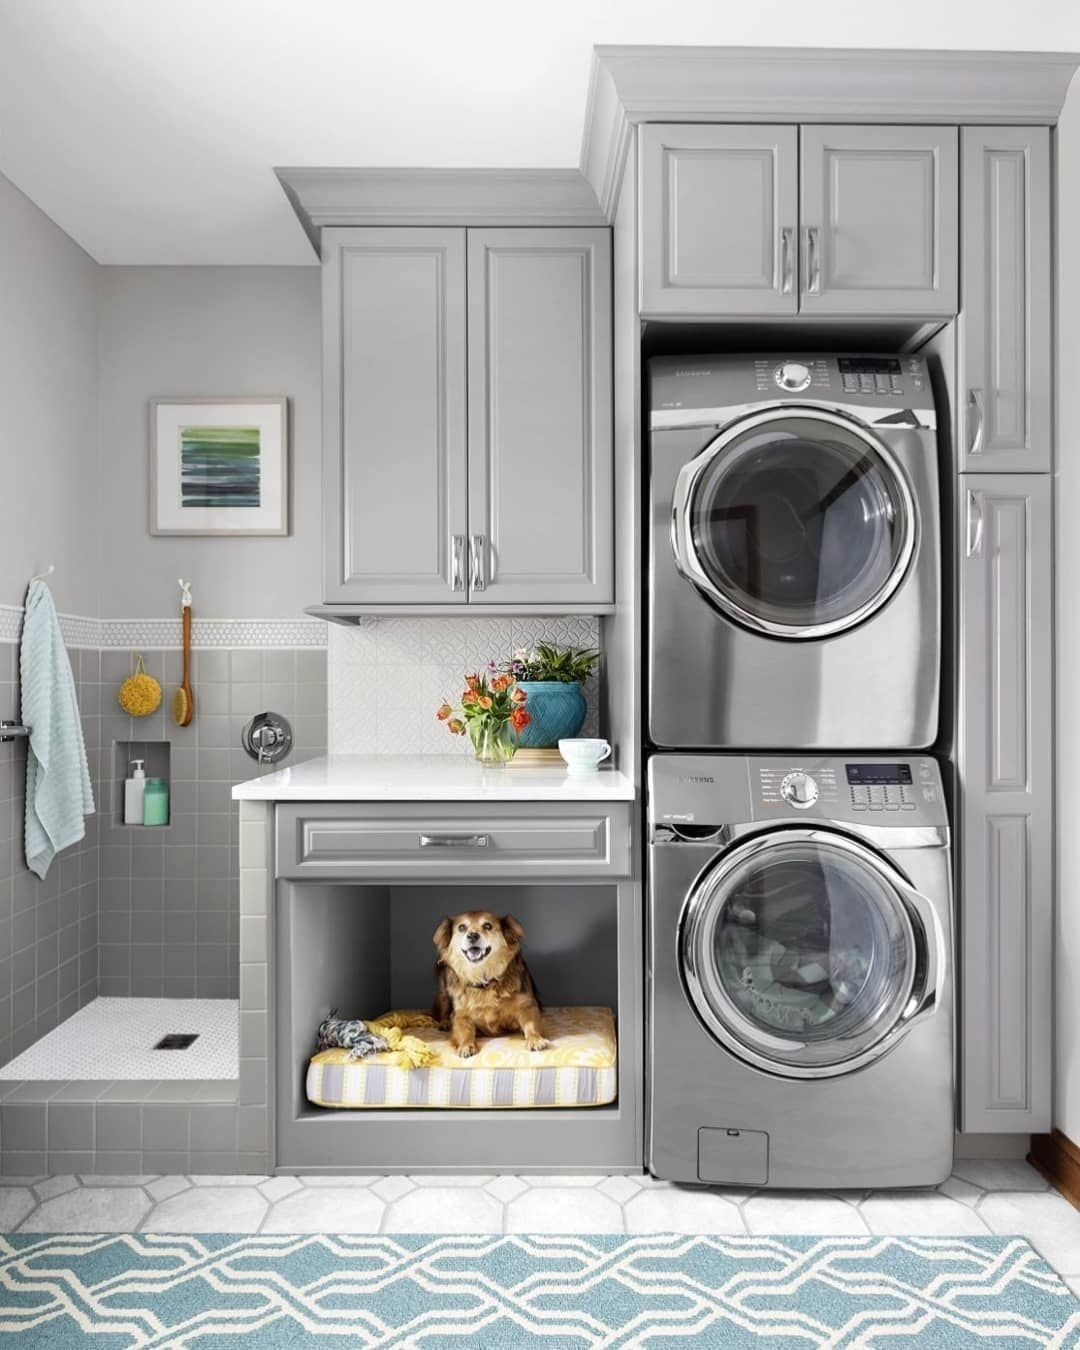 48 Modern Laundry Room Makeover Ideas for Your House images